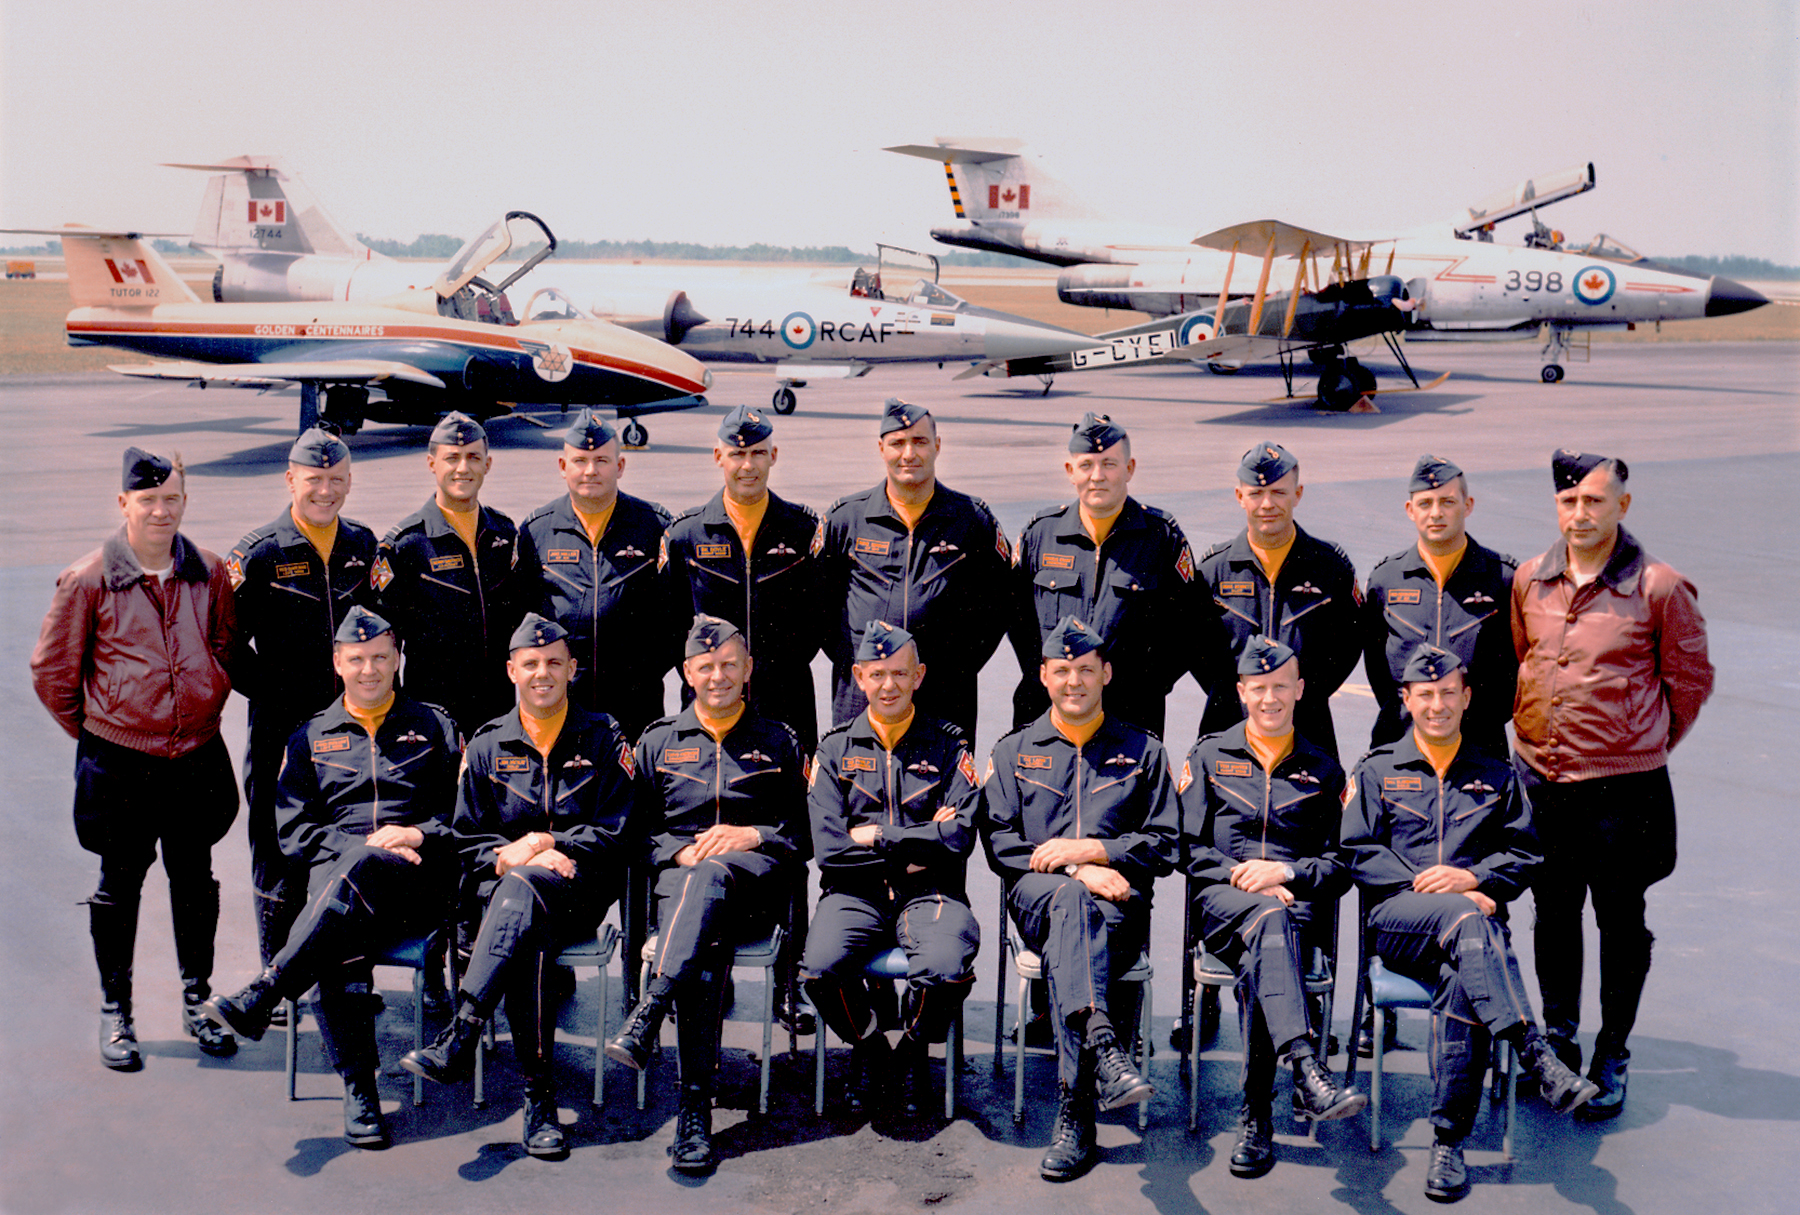 The 1967 Golden Centennaires officers. Front row, from left, are Flight Lieutenant John Swallow (left wing), Flying Officer Jim McKay (opposing solo), Squadron Leader Lloyd Hubbard (public information officer), Wing Commander O.B. Philp (commanding officer), Squadron Leader C.B. Lang (team leader), Flight Lieutenant Tom Hinton (right wing), and Flight Lieutenant Bill Slaughter (lead solo). Back row, from left, are Flight Lieutenant Gord Brown (Avro 504K), Squadron Leader Bob Dagenais (outer left wing), Flight Lieutenant Denis Gauthier (commentator), Flight Lieutenant Jake Miller (CF-101), Squadron Leader B.K. Doyle (outer right wing), Flight Lieutenant René Serrao (CF-104), Flight Lieutenant Charlie Grant (engineering officer), Squadron Leader Russ Bennett (slot), Flight Lieutenant Rob McGimpsey (CF-101 navigator), Flight Lieutenant George Greff (Avro 504K). Missing are Flight Lieutenant Jack Waters (the Red Knight,), and his alternate, Flying Officer Rod Ellis. In the background are, from left, a Centennaire CT-114 Tutor, a CF-104 Starfighter, an Avro 504K, and a CF-101 Voodoo. PHOTO: DND, Corporal Bob Imre